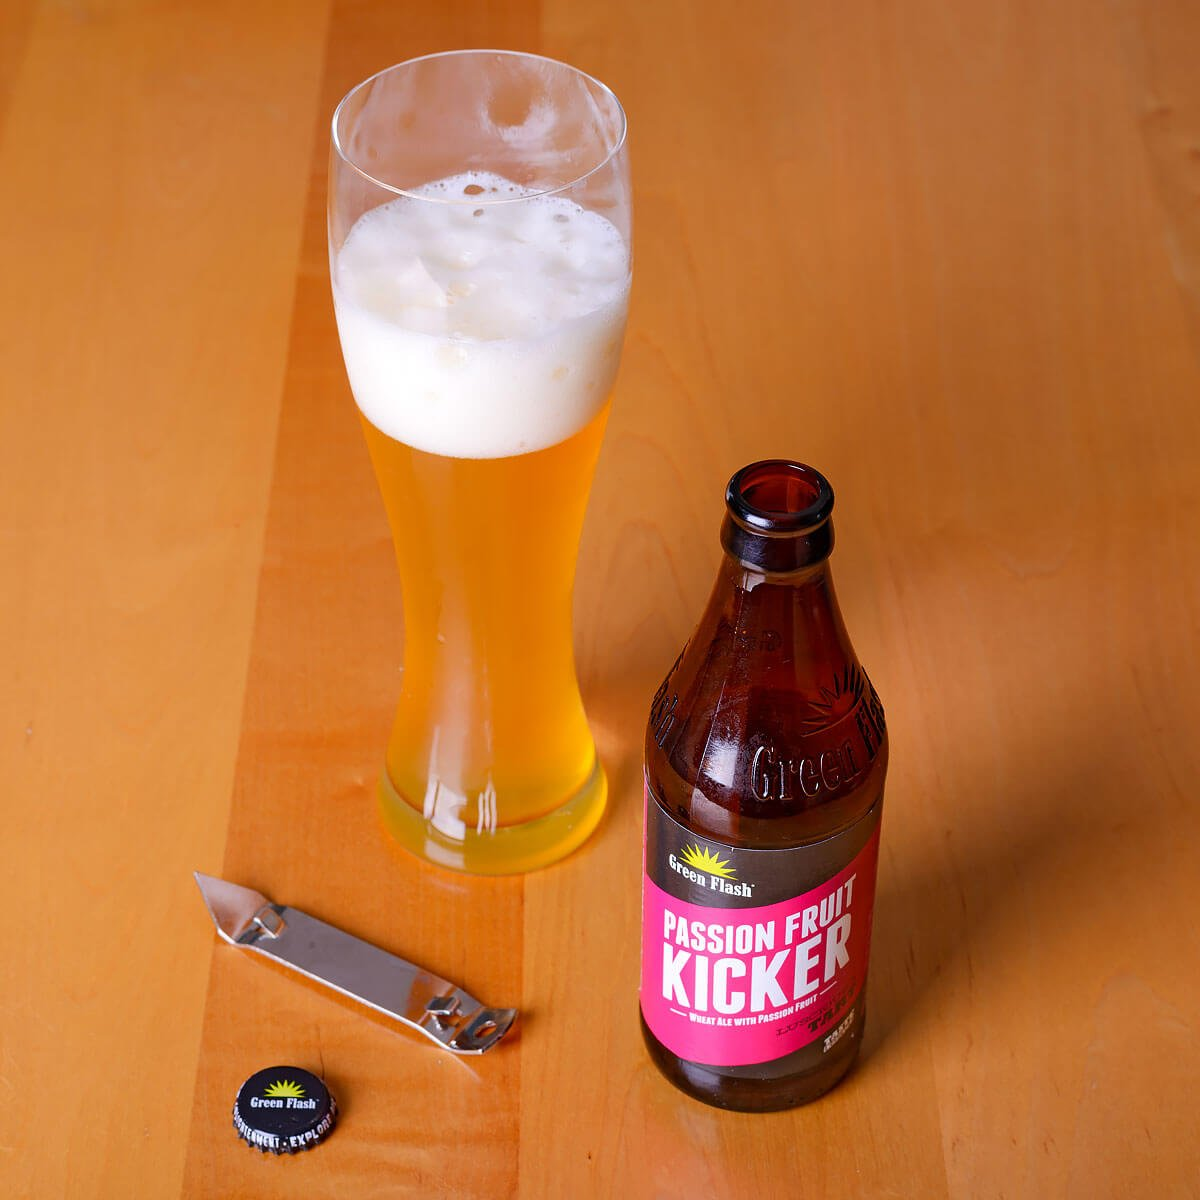 Passion Fruit Kicker, an American Wheat Ale by Green Flash Brewing Co.